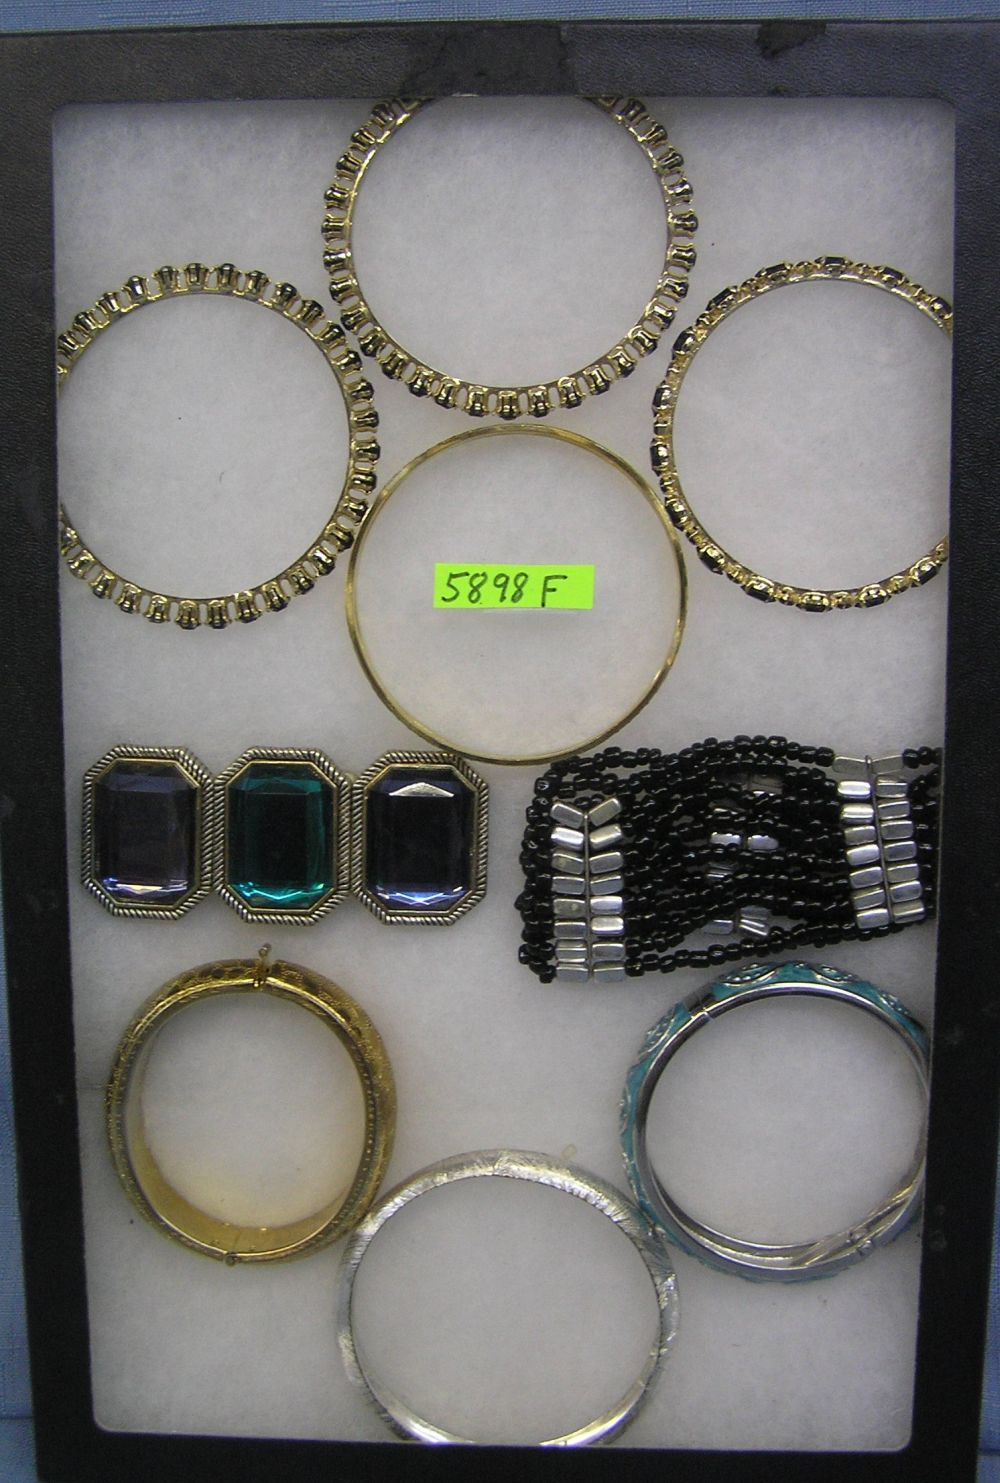 GROUP OF COSTUME JEWELRY BRACELETS